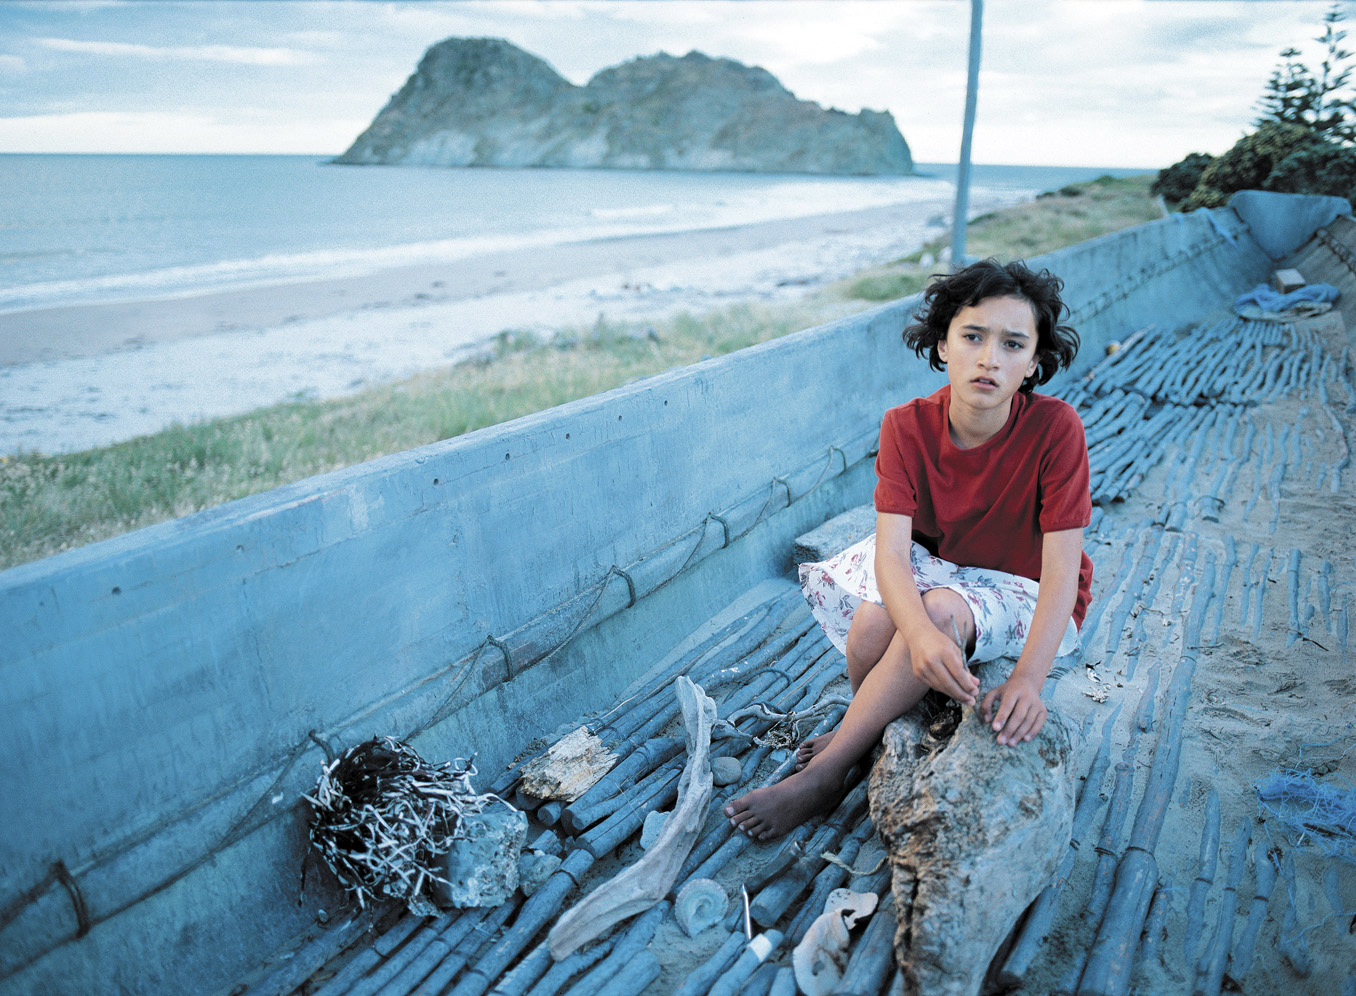 whale rider critical analysis counter cinema is defined as ldquonon mainstream visions that stand in opposition to the dominant forms of hollywood rdquo danilovic 2012 p 2 slide 9